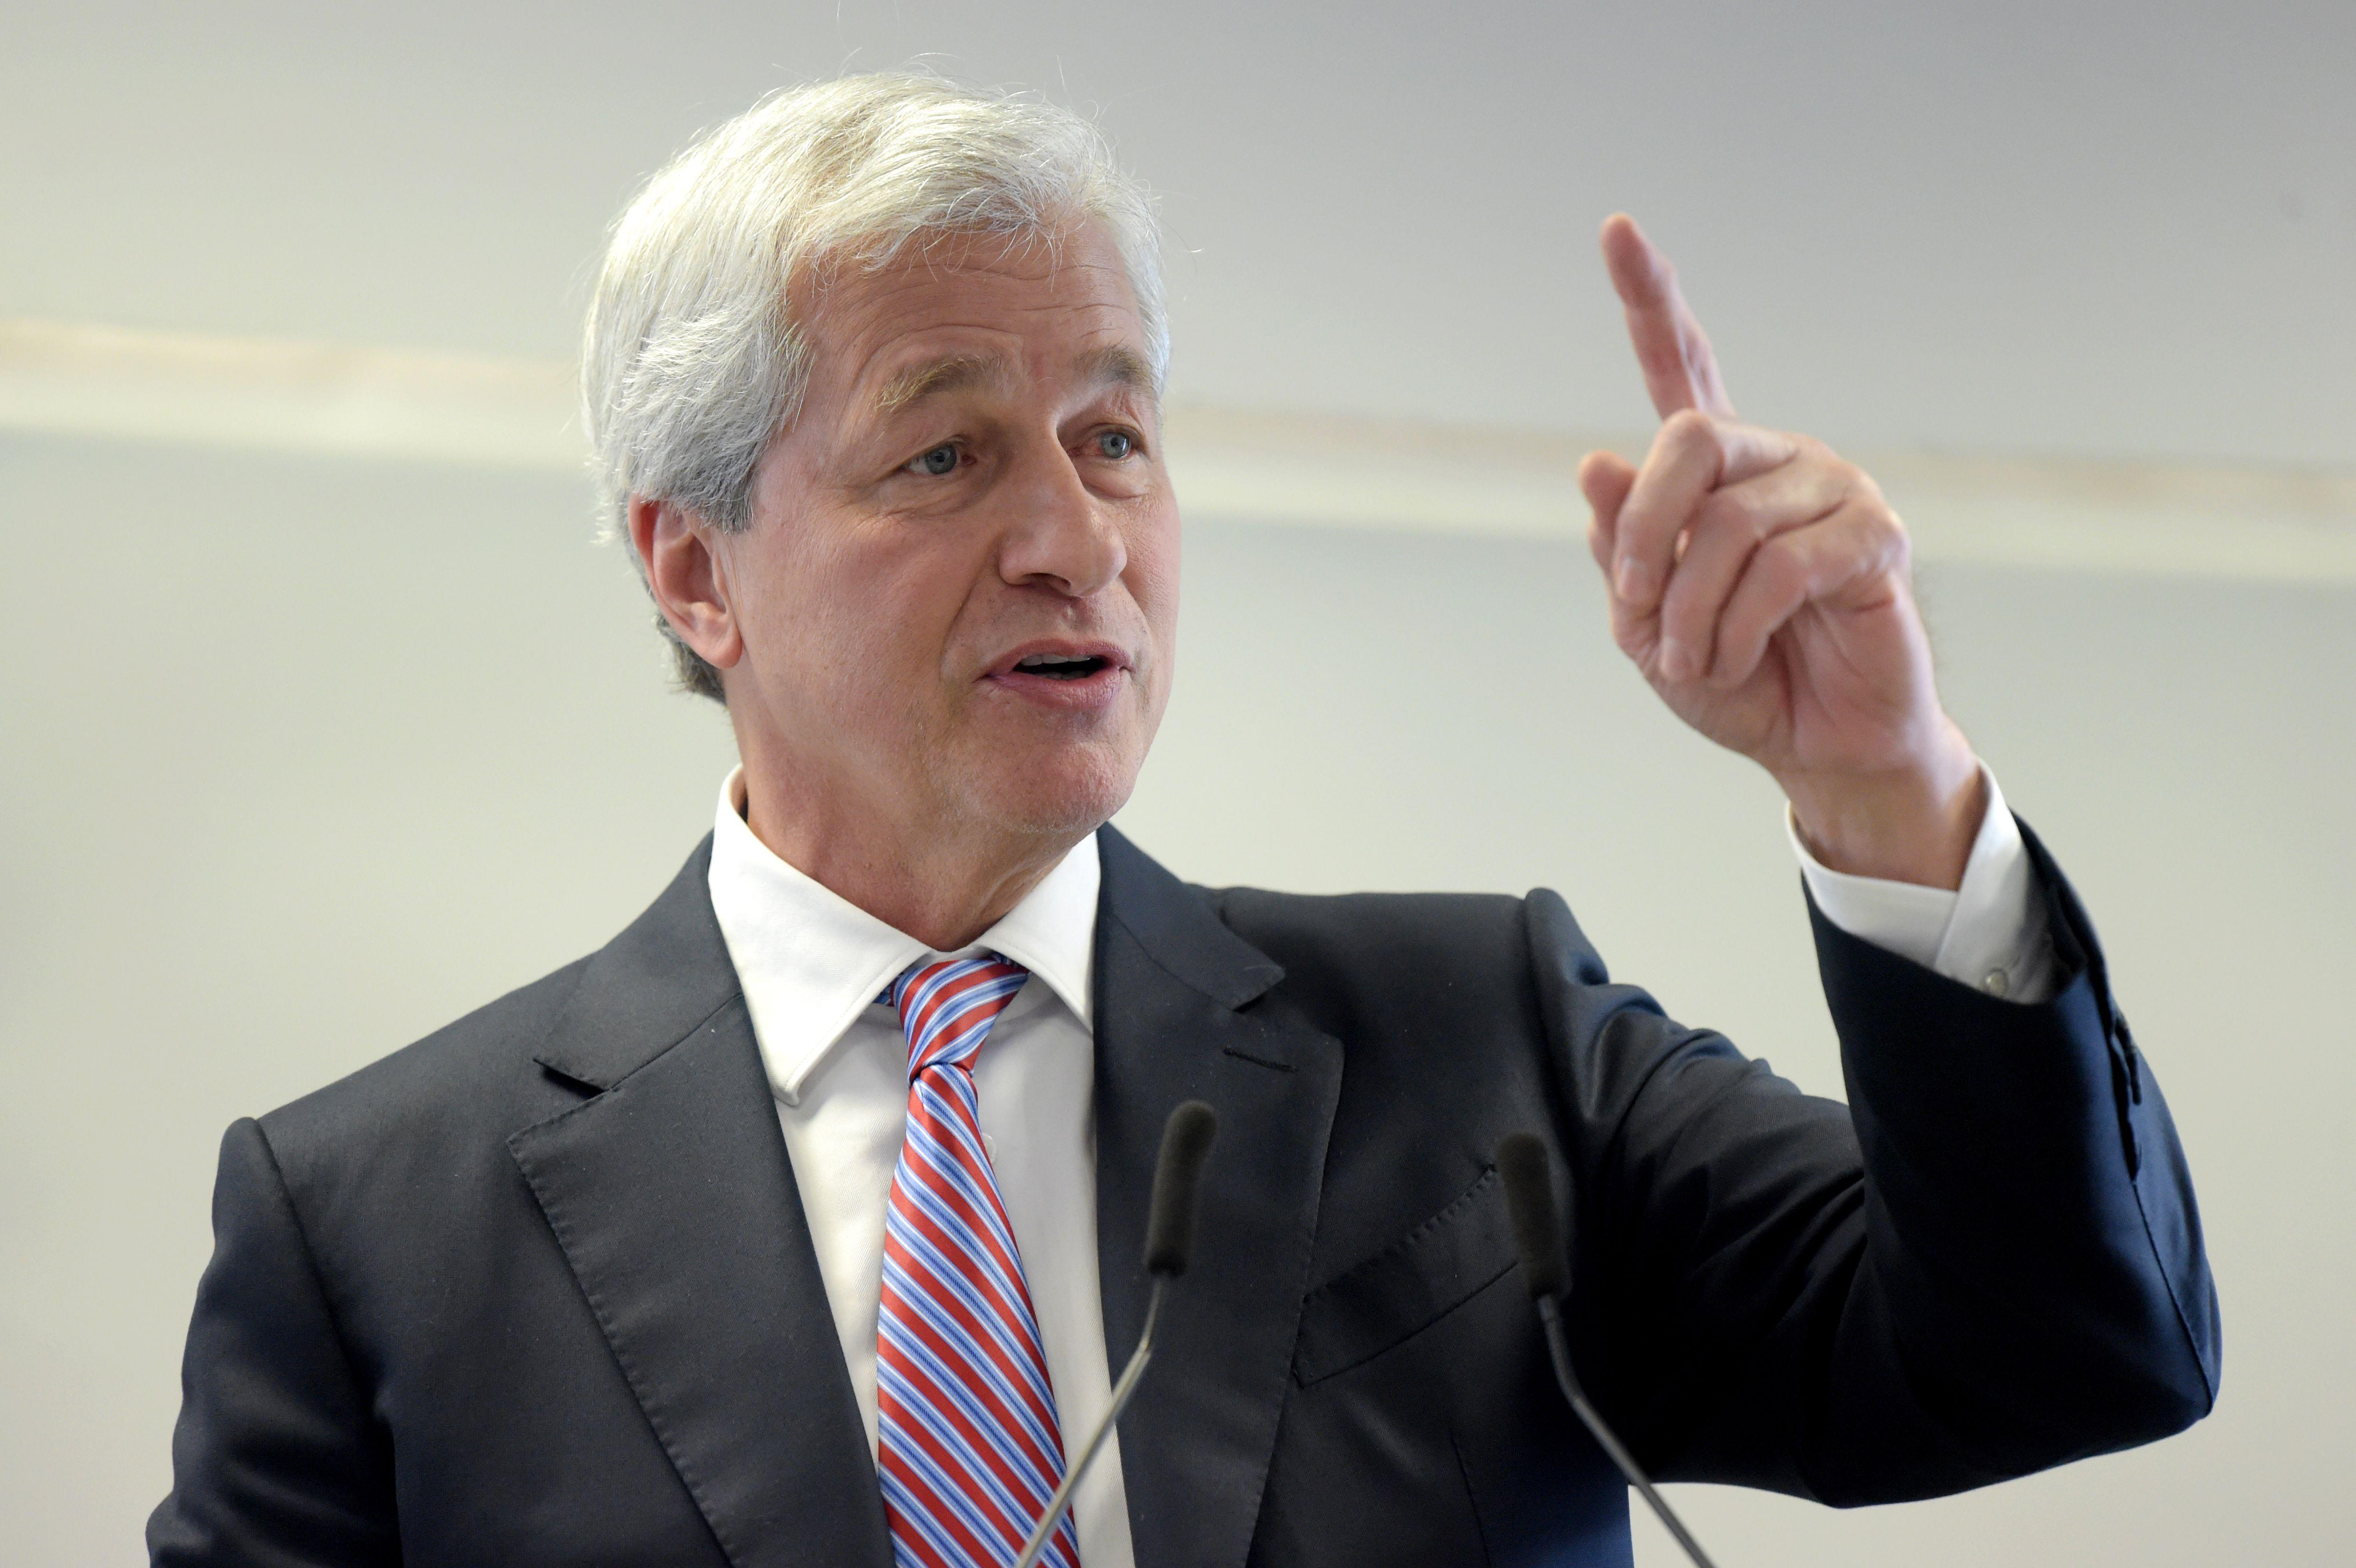 JPMorgan can handle GDP falling at a 35% rate: Dimon